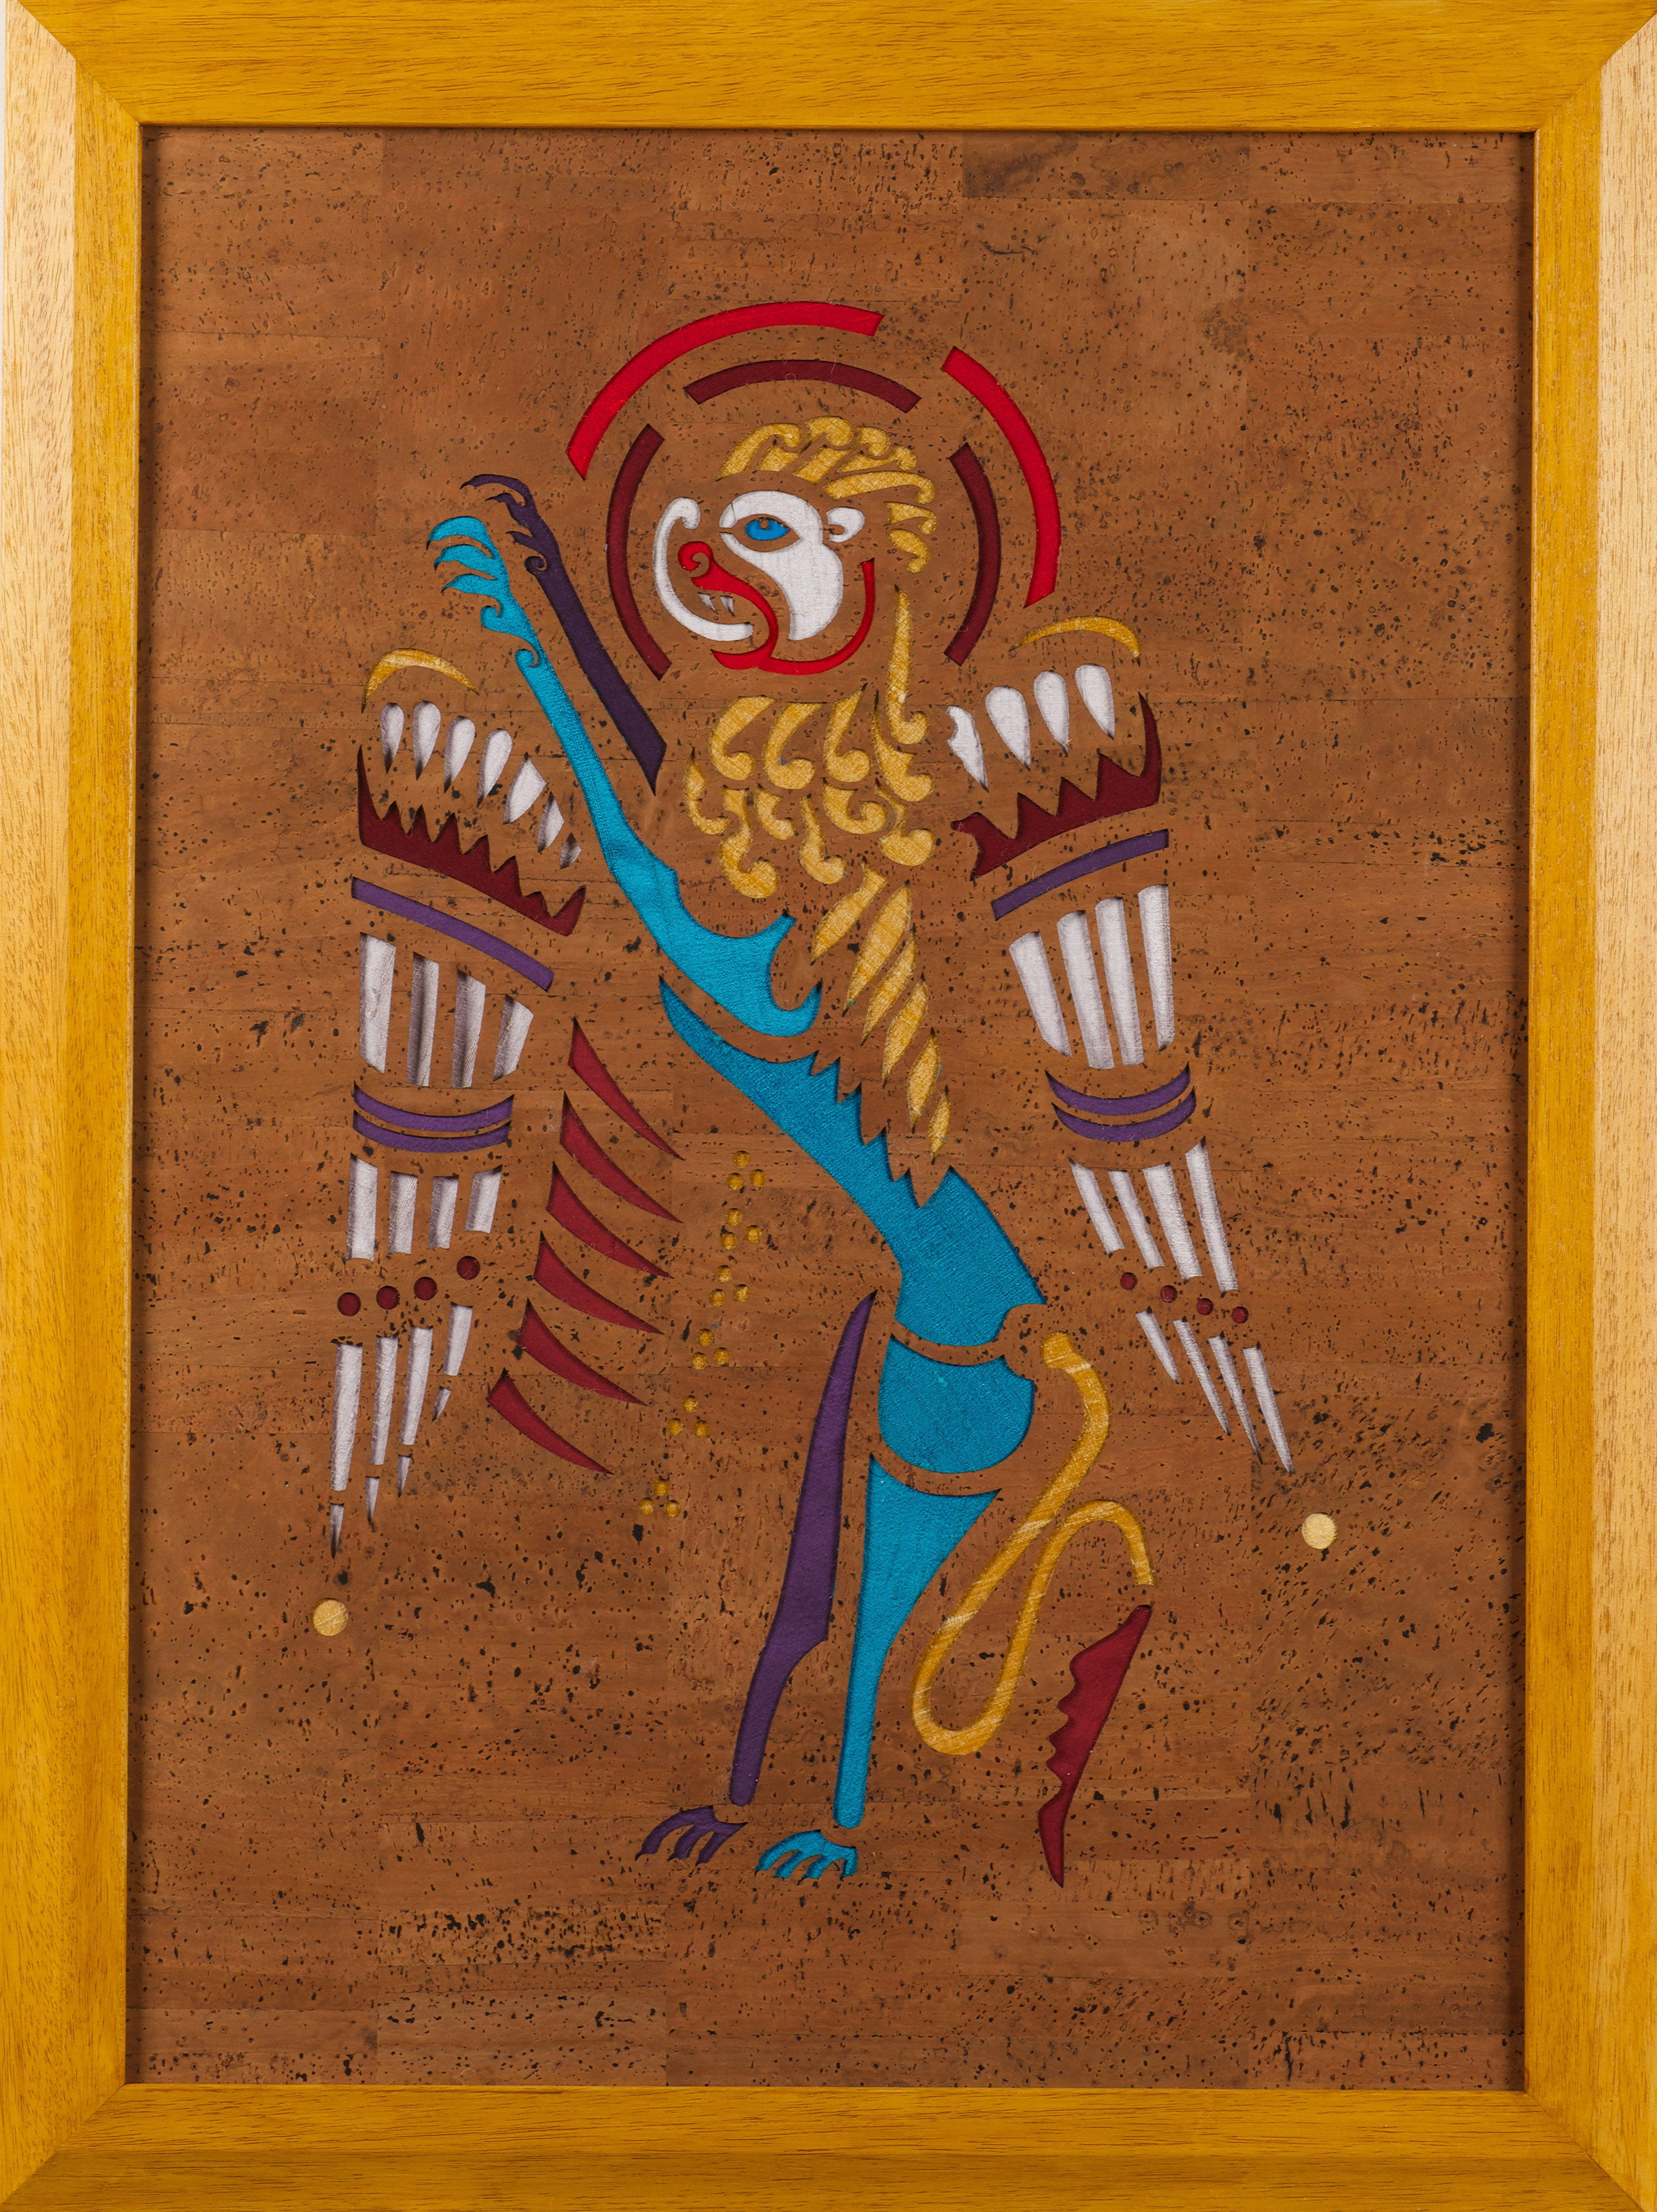 This cork and silk panel of the lion of st mark is like the st this cork and silk panel of the lion of st mark is like the st matthew and st john panels based an illustration from the book of kells biocorpaavc